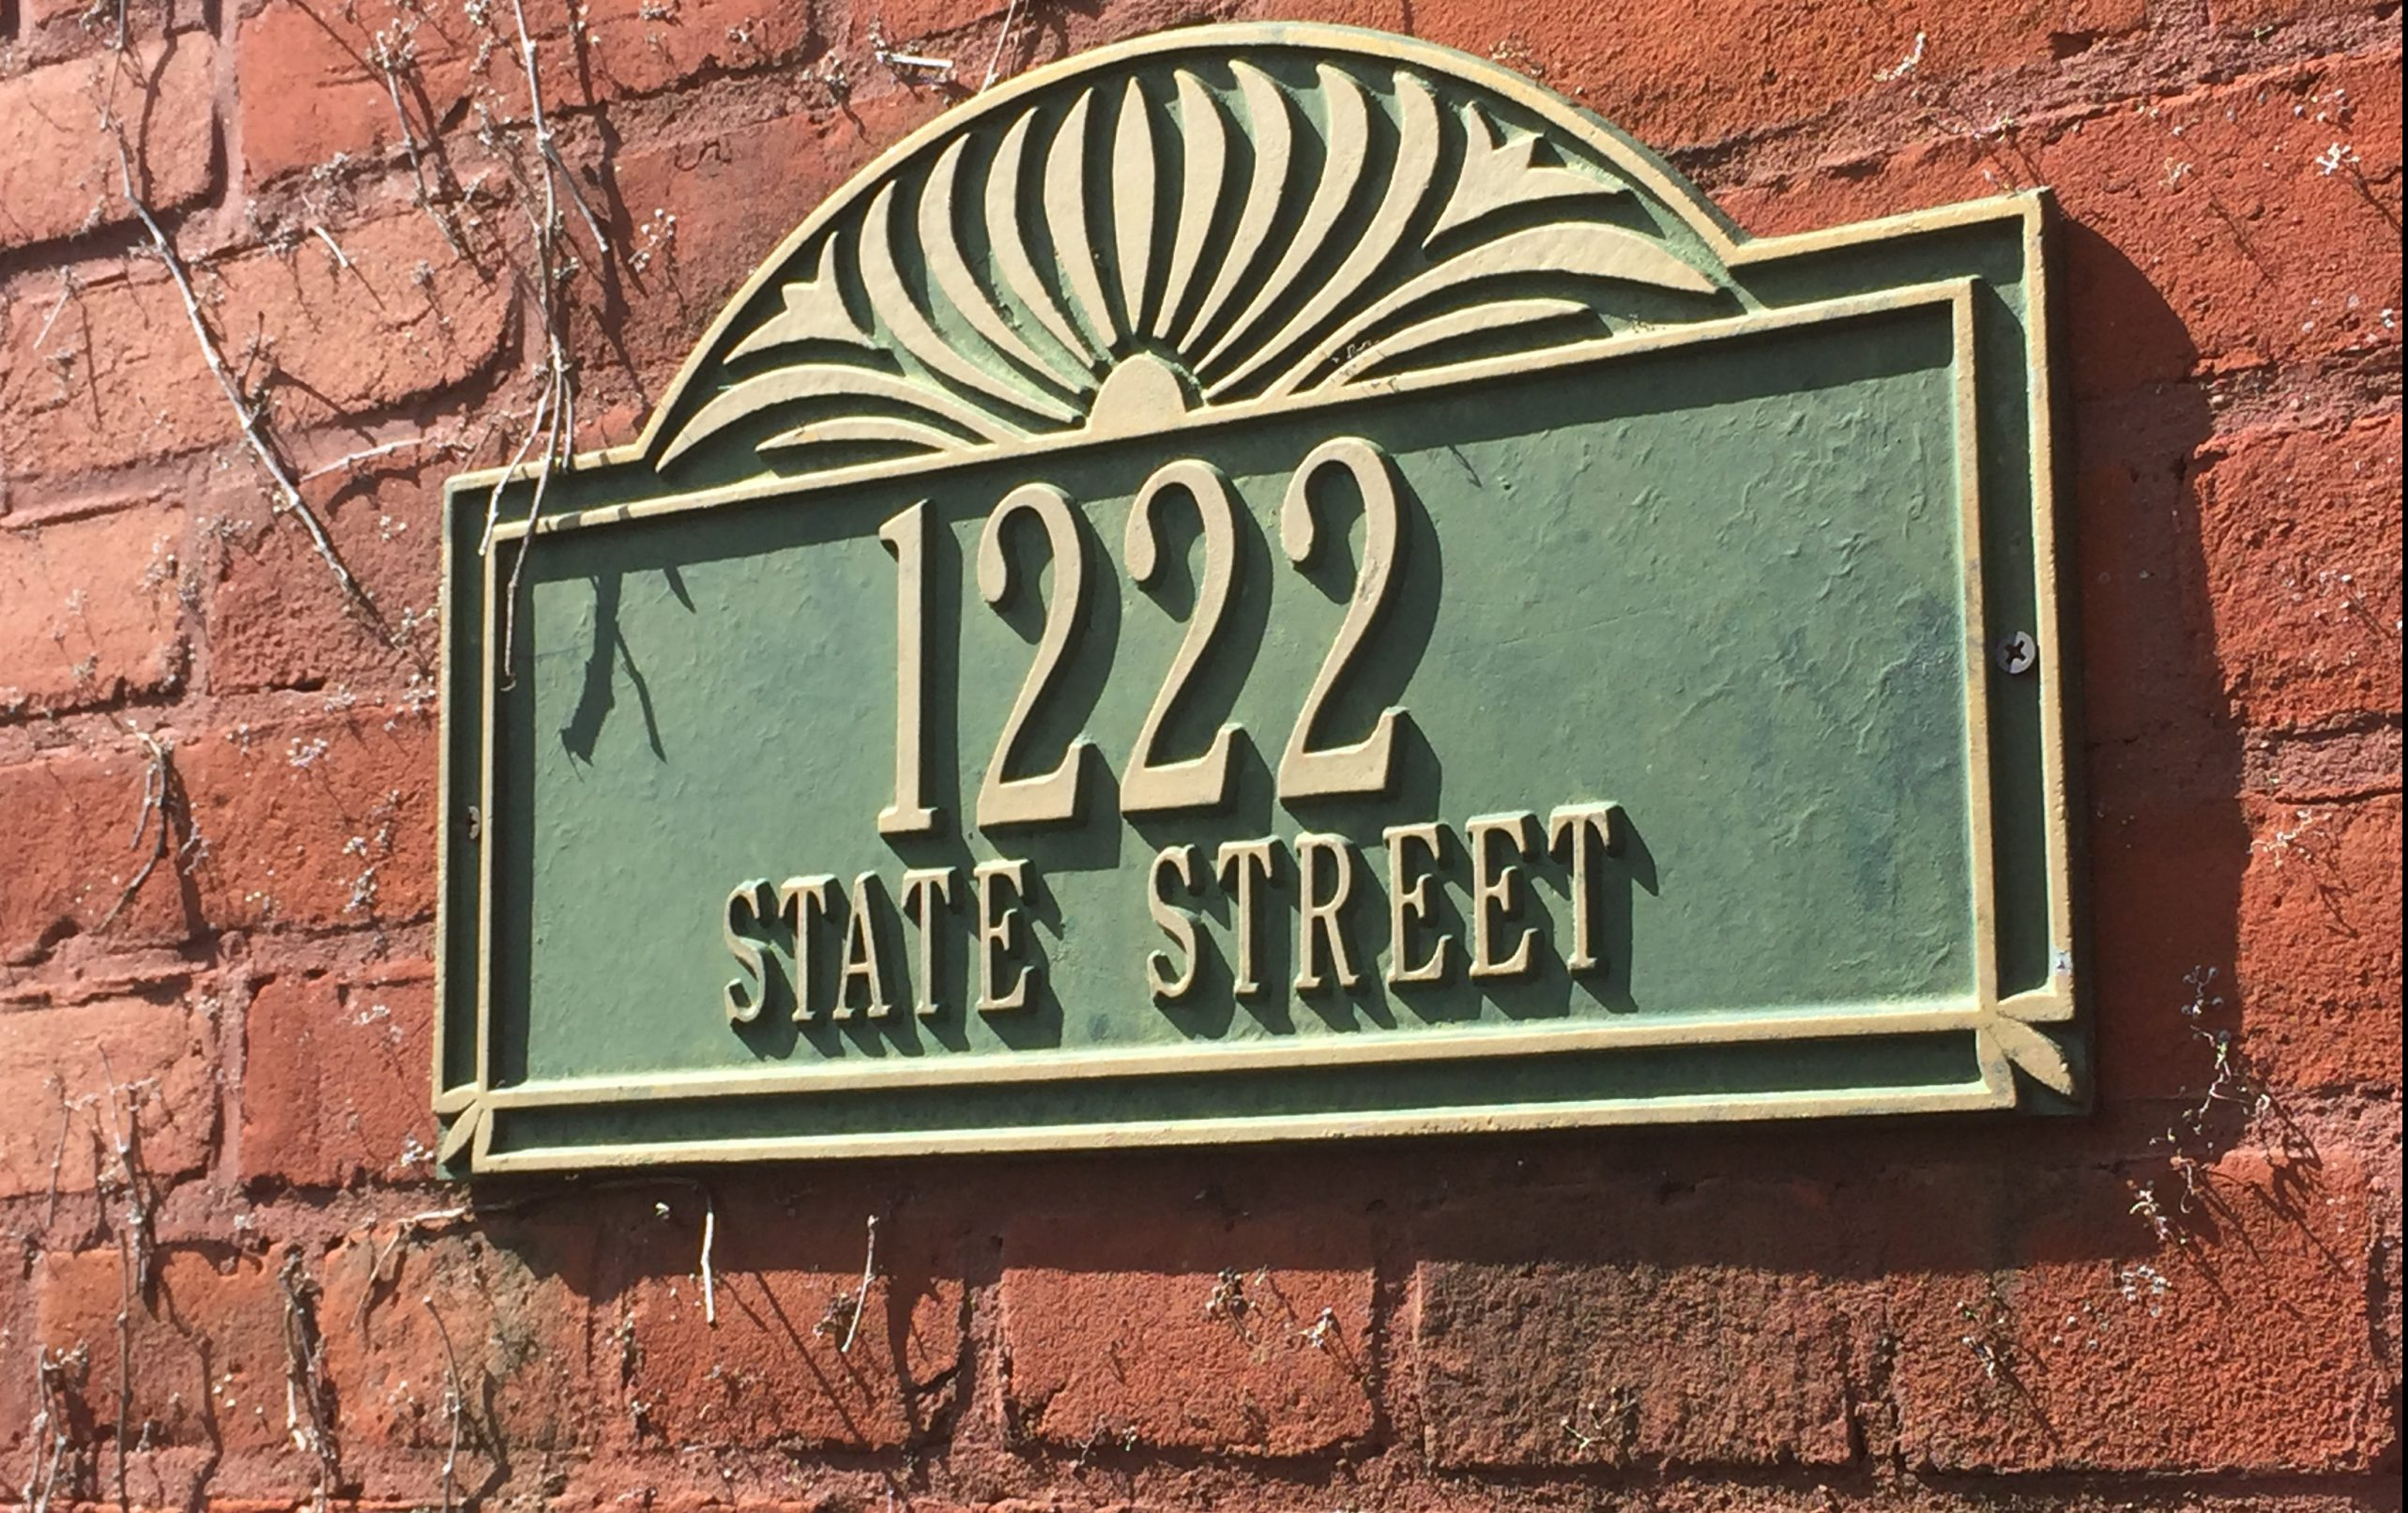 1222 State Street Sign